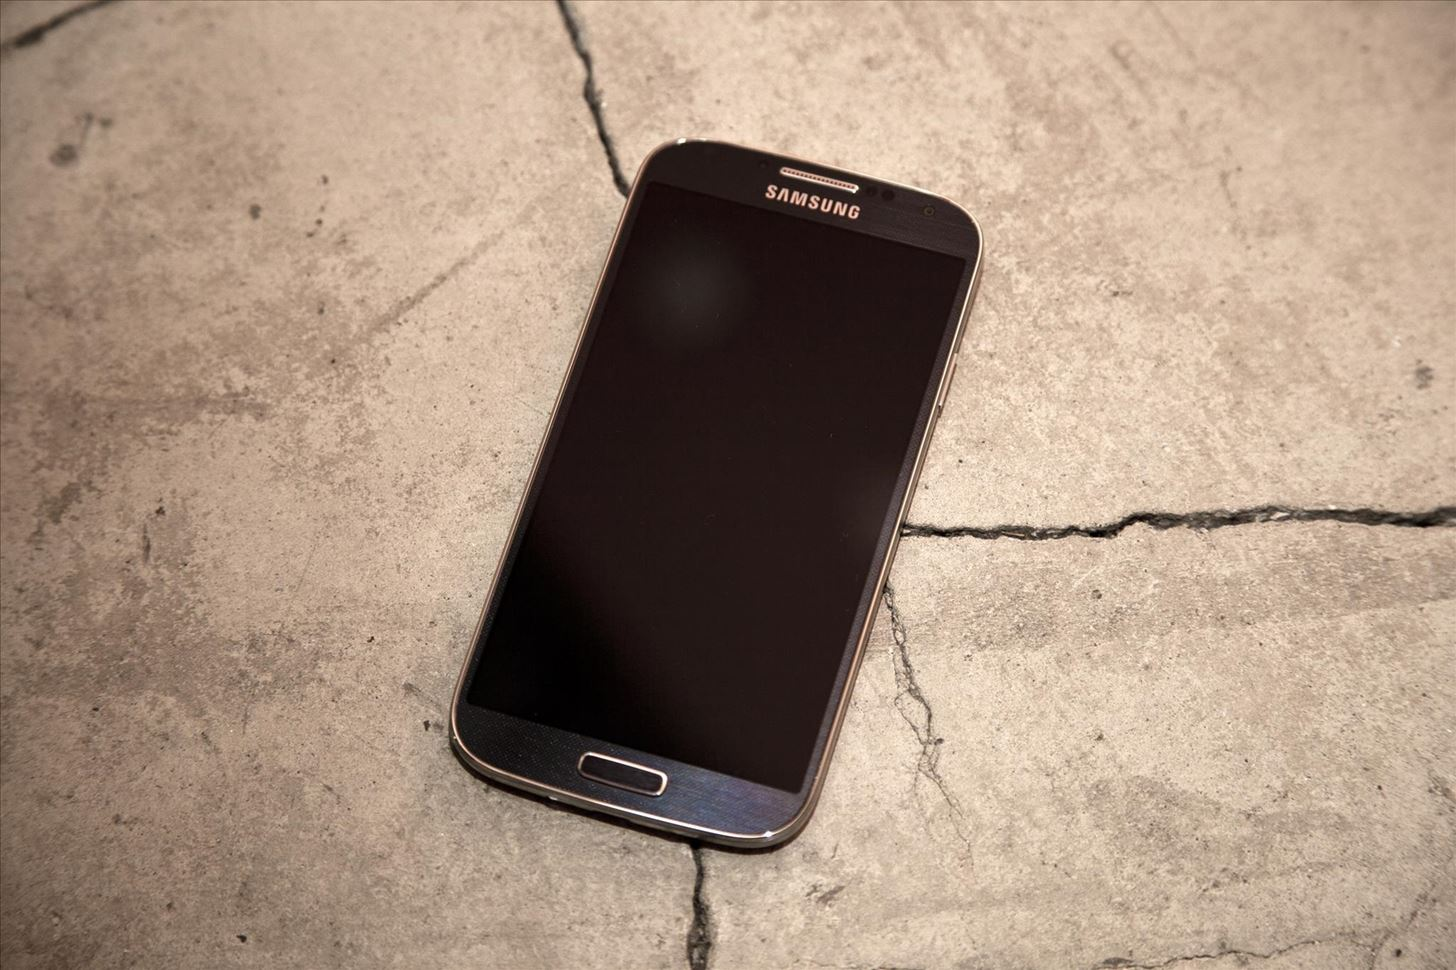 The Real Story Behind Rooting the Samsung Galaxy S4—And Its New Secured Kernel